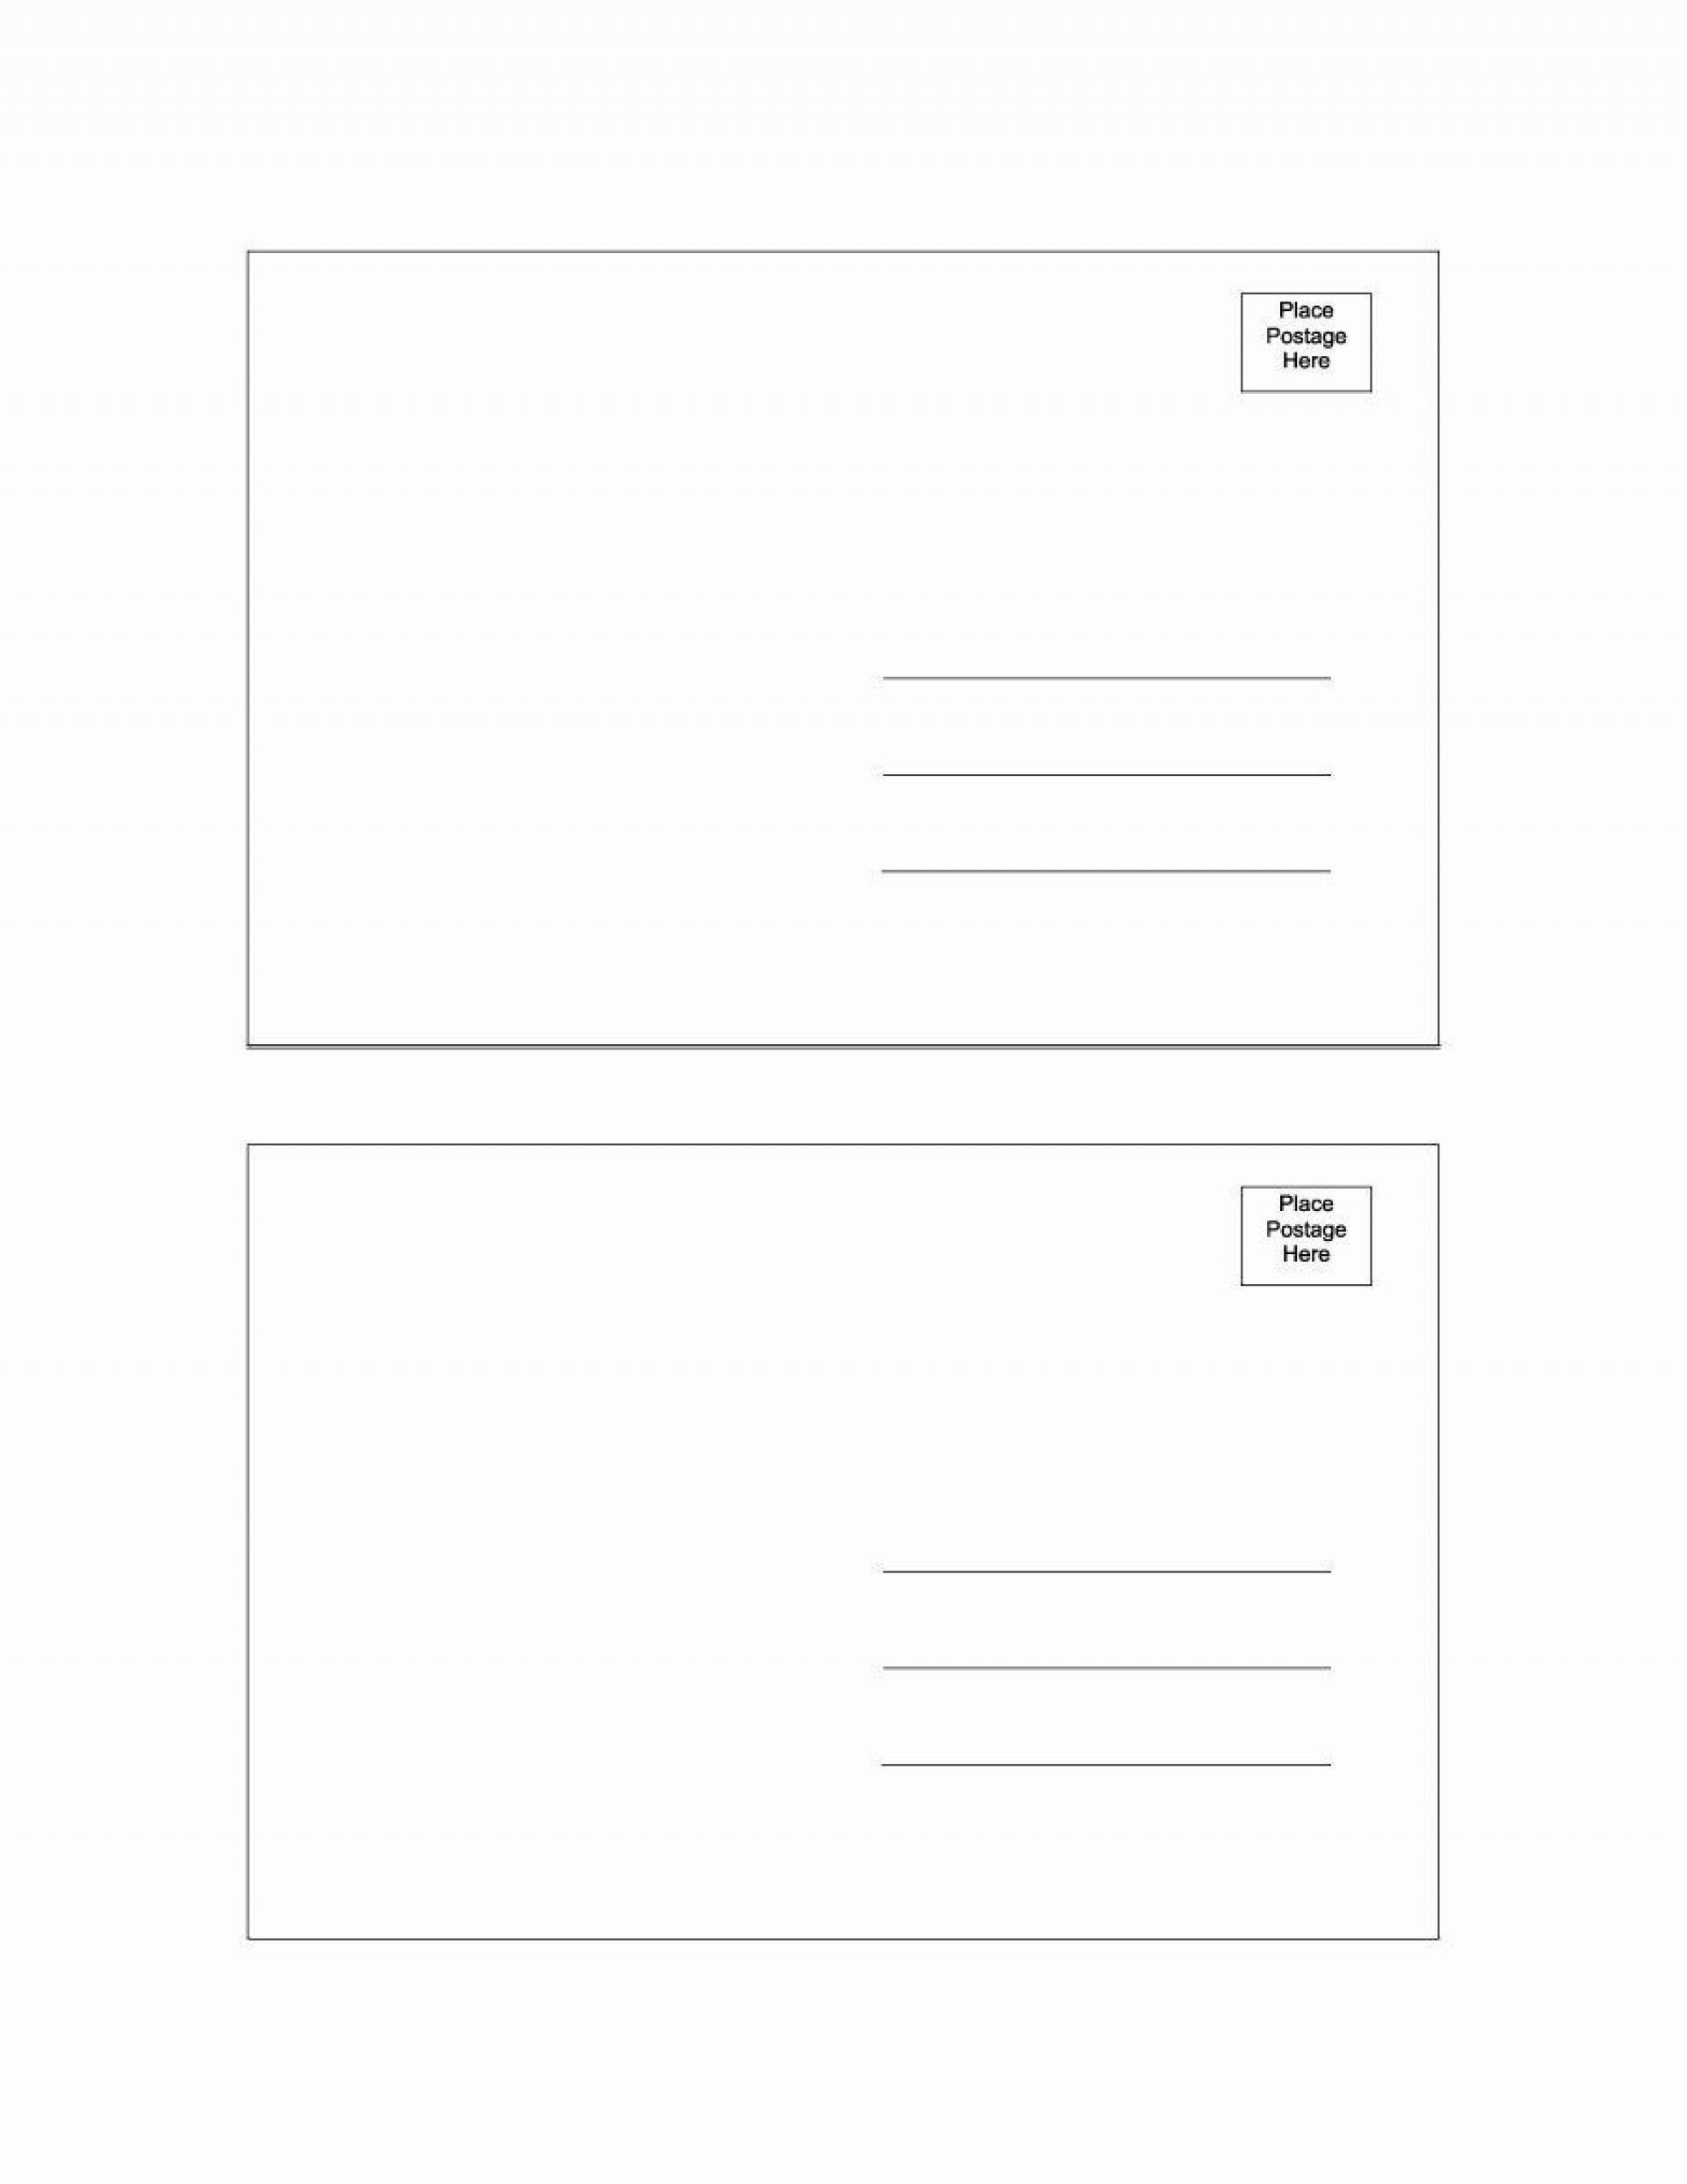 5x7 Folded Card Template For Word In 2021 Postcard Template Free Postcard Template Postcard Template Business